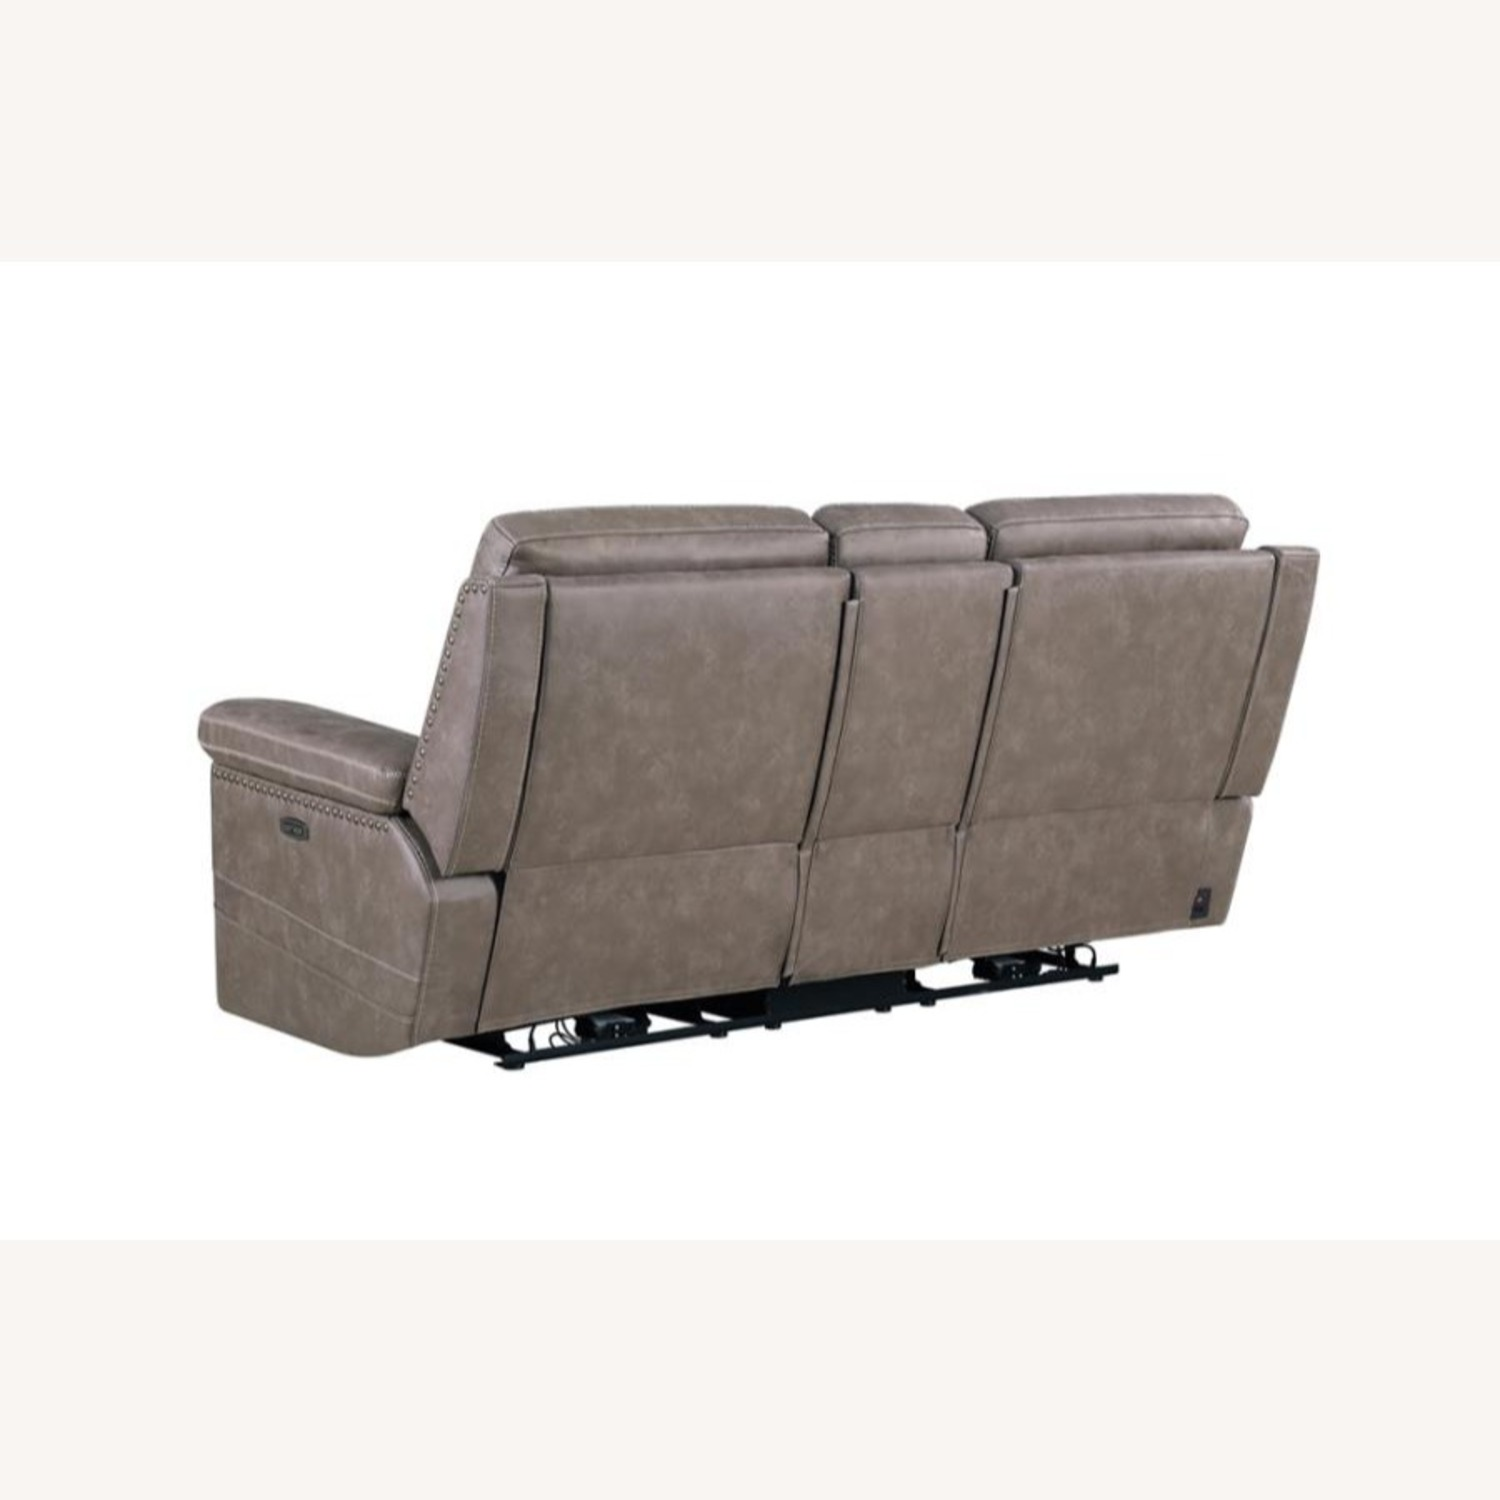 Power Loveseat Recliner In Taupe Upholstery - image-12